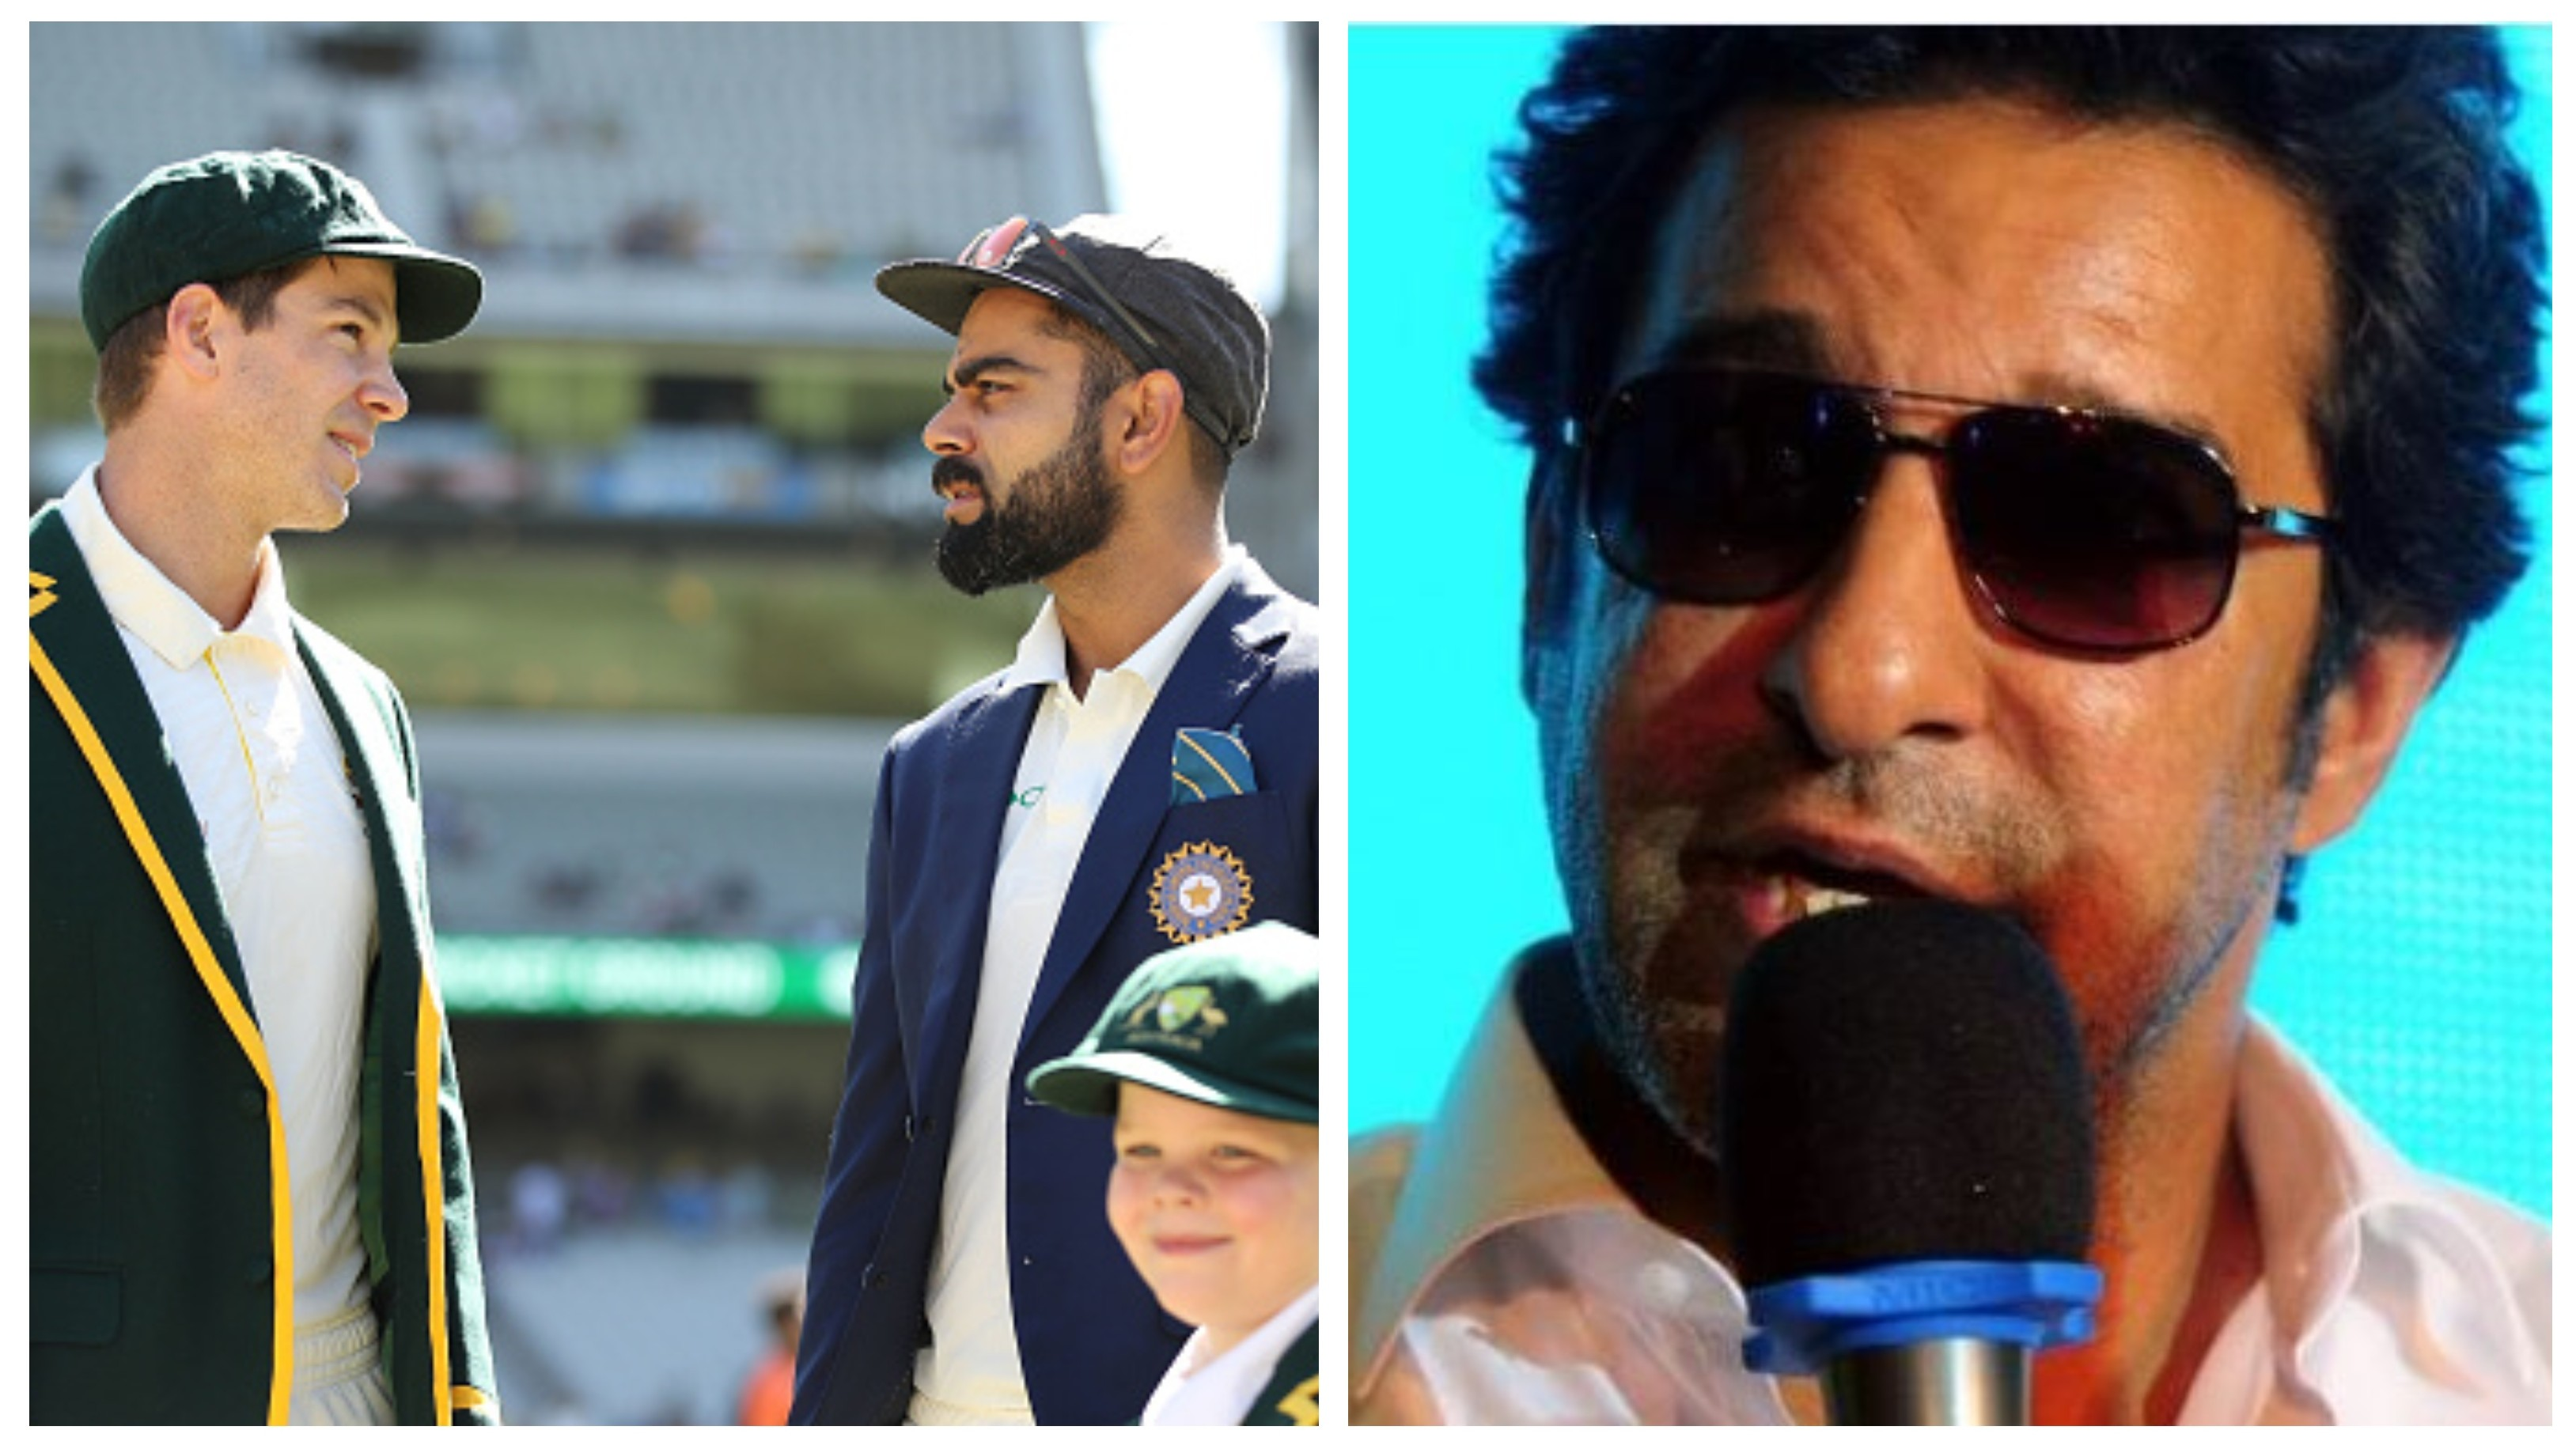 AUS v IND 2020-21: WATCH - Wasim Akram names his favourites for Australia-India Test series